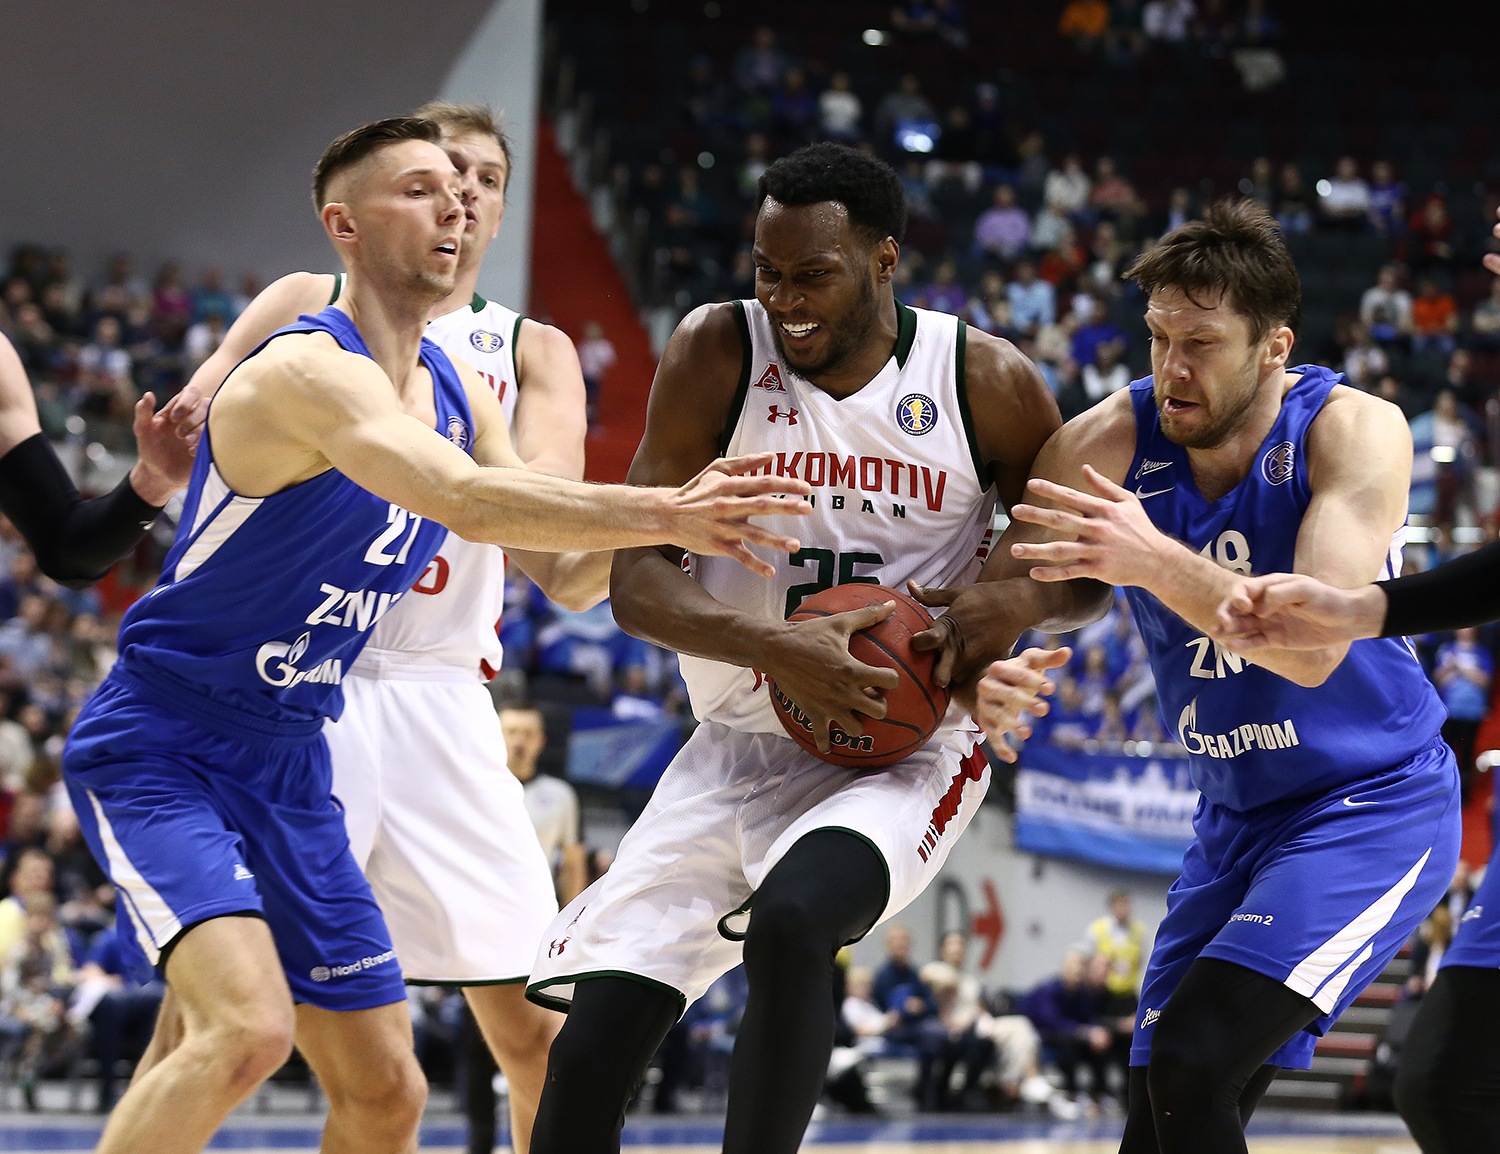 Quarterfinals In Review: Zenit Blocks Loko From Reaching Semifinals, Errick McCollum Switches On Playoff Mode, CSKA, UNICS And Khimki Sweep